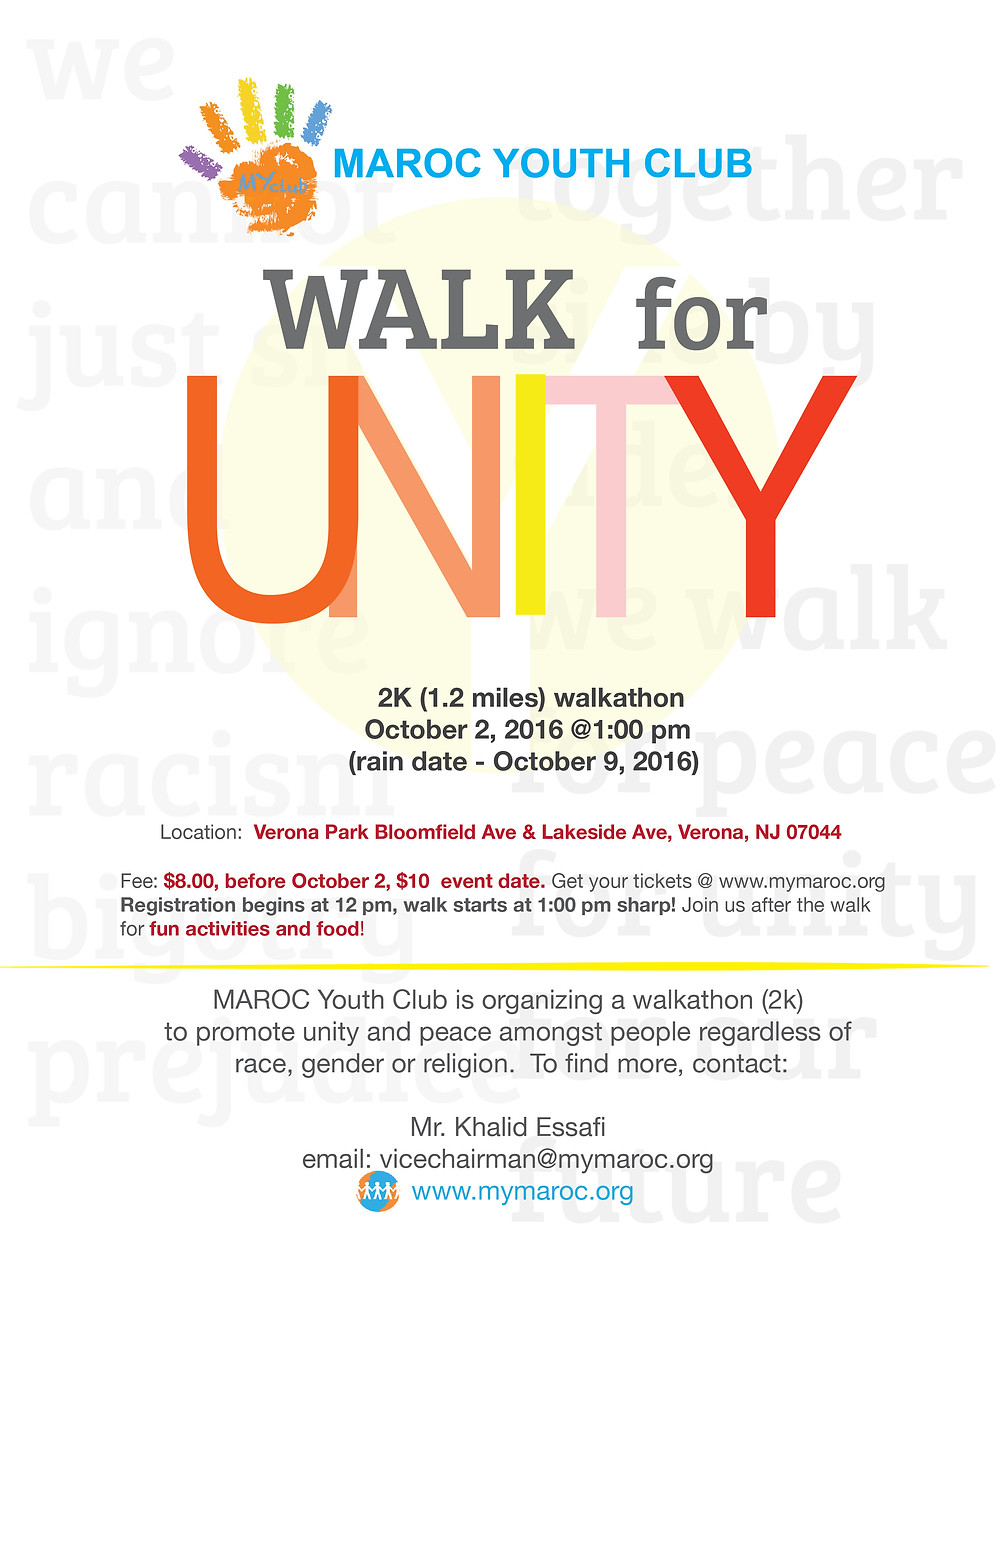 Please join us in this Walkathon for Unity & Peace. Ready to get your tickets? Click here